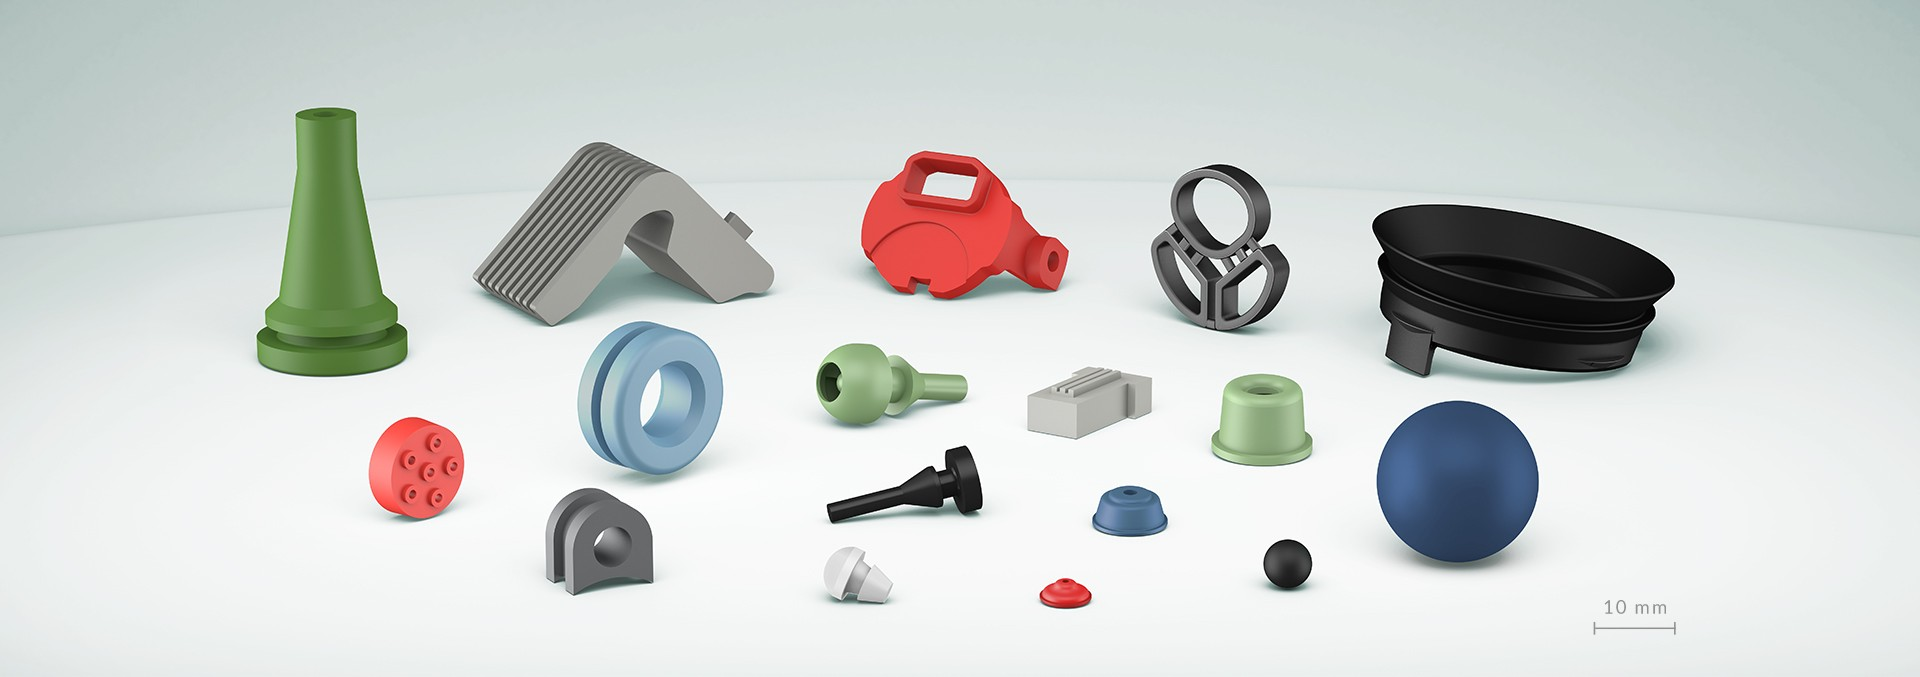 Molded rubber articles